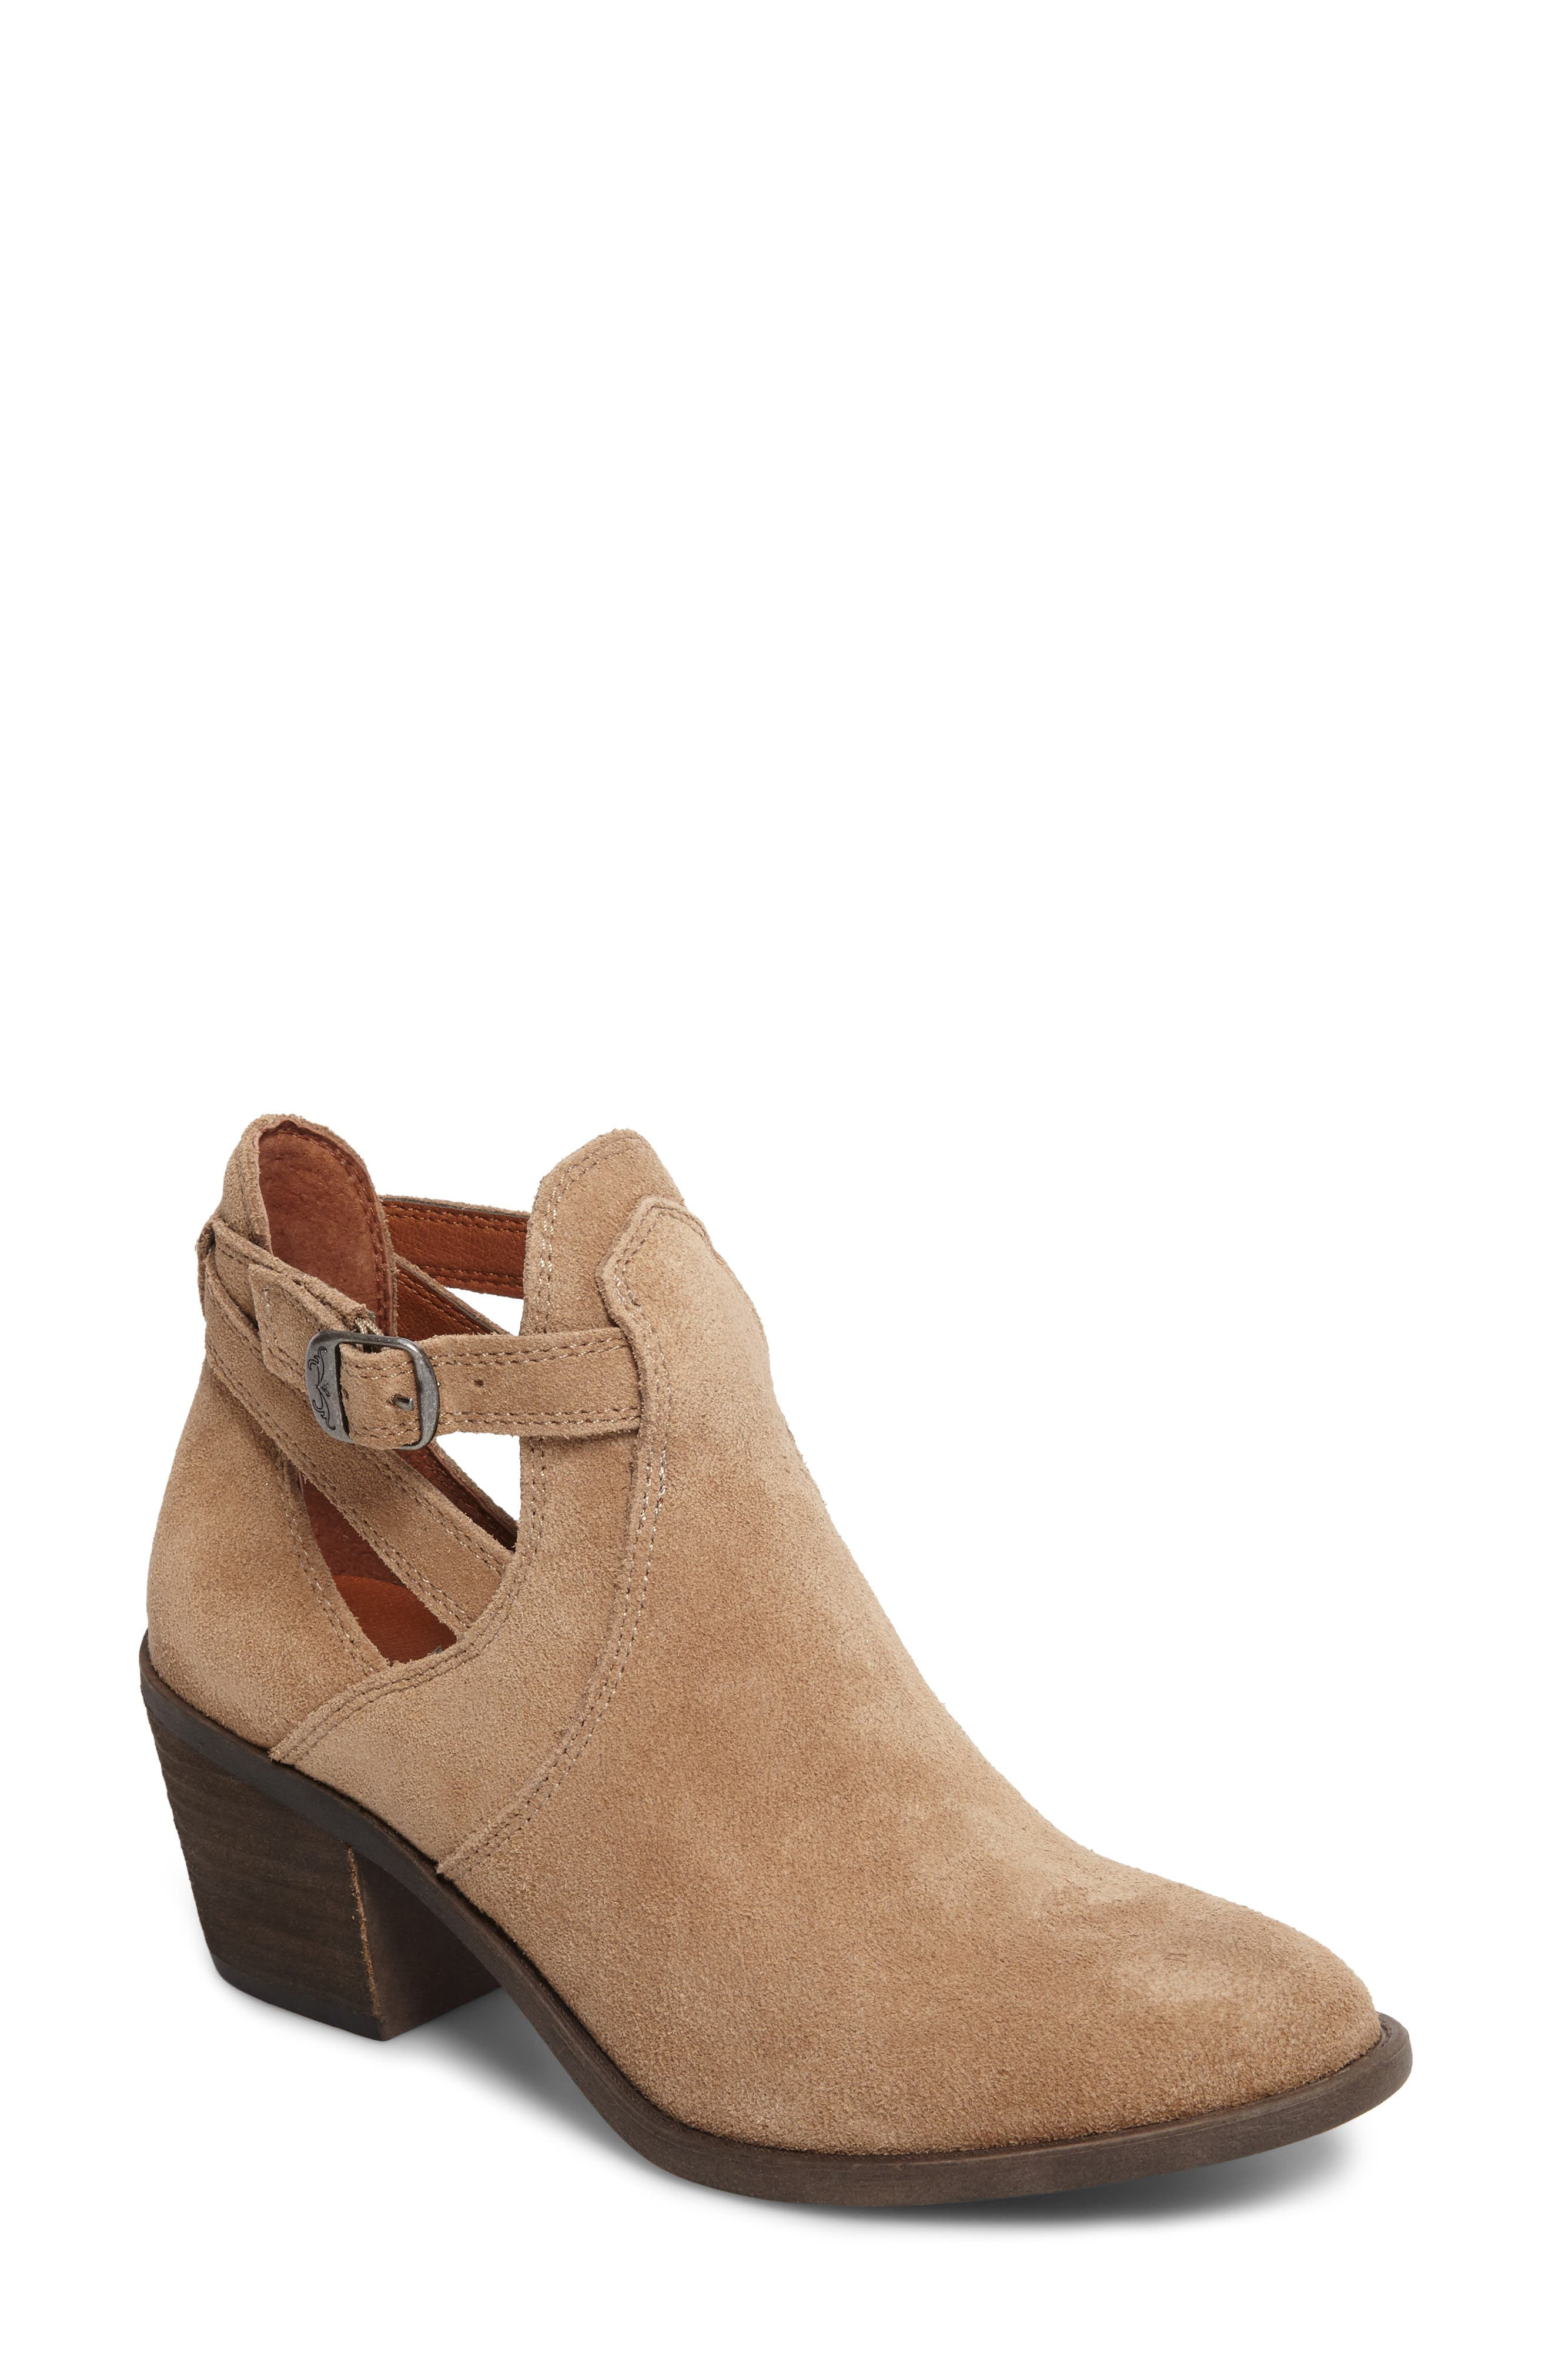 Alternate Image 1 Selected - Lucky Brand Nandita Cutout Bootie (Women)